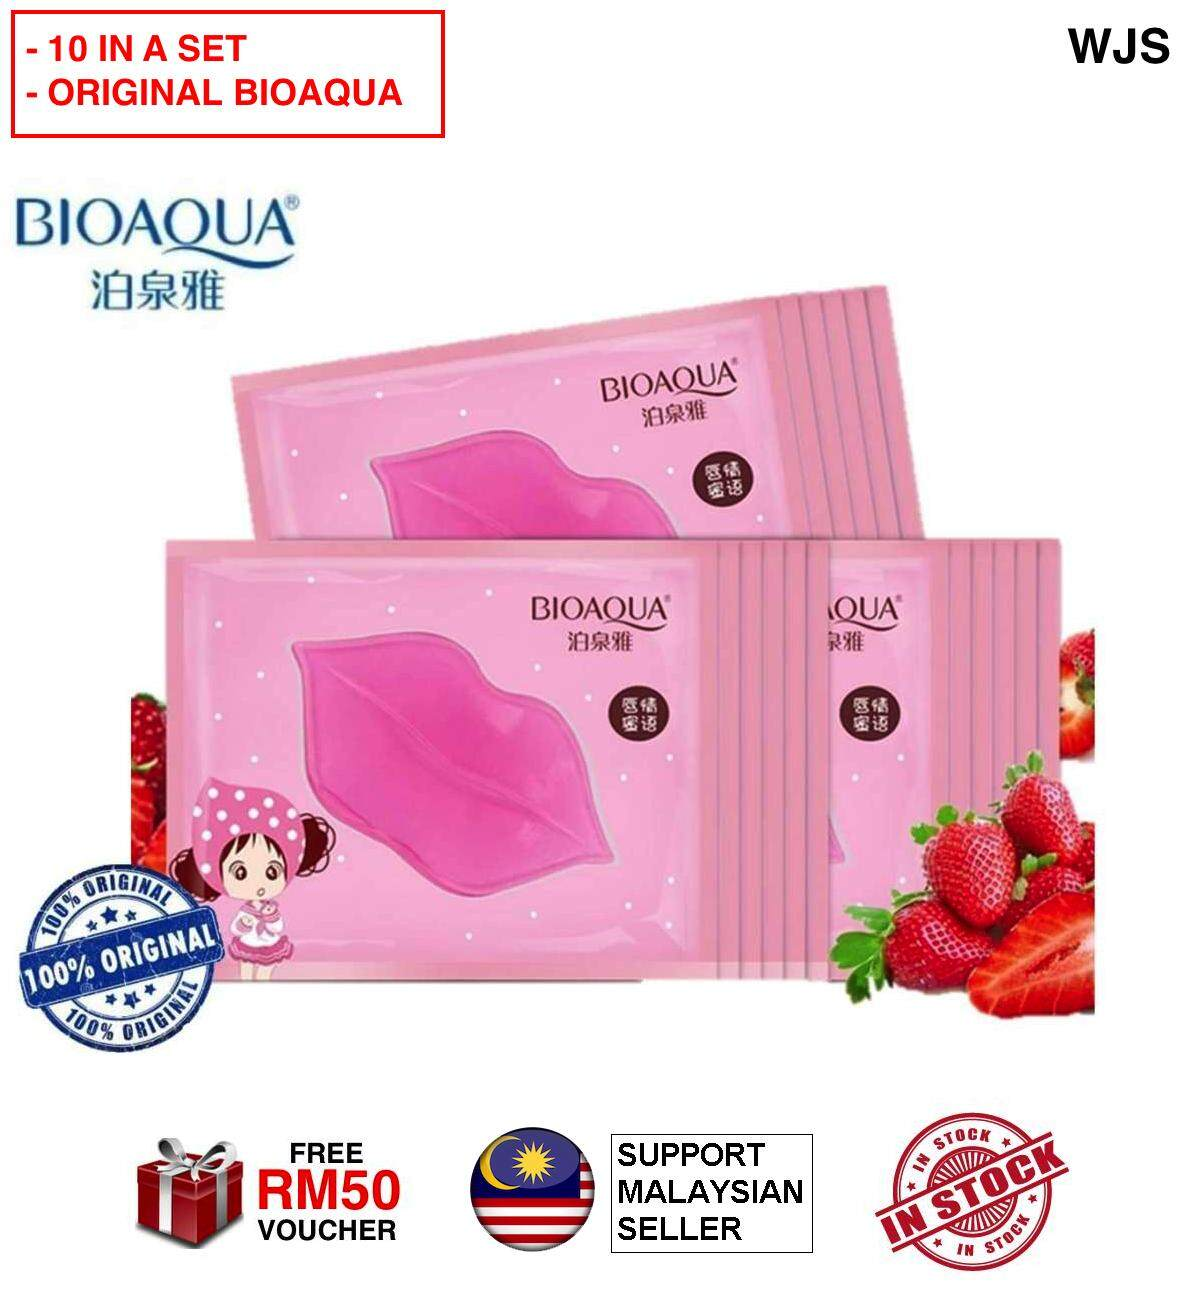 (HALAL & 10 IN A SET) WJS 10pcs 10 pcs BioAqua Collagen Nourishing Hydrating Bioaqua Lip Mask Moisturising Lips Mask Beauty Lips PINK [FREE RM 50 VOUCHER]